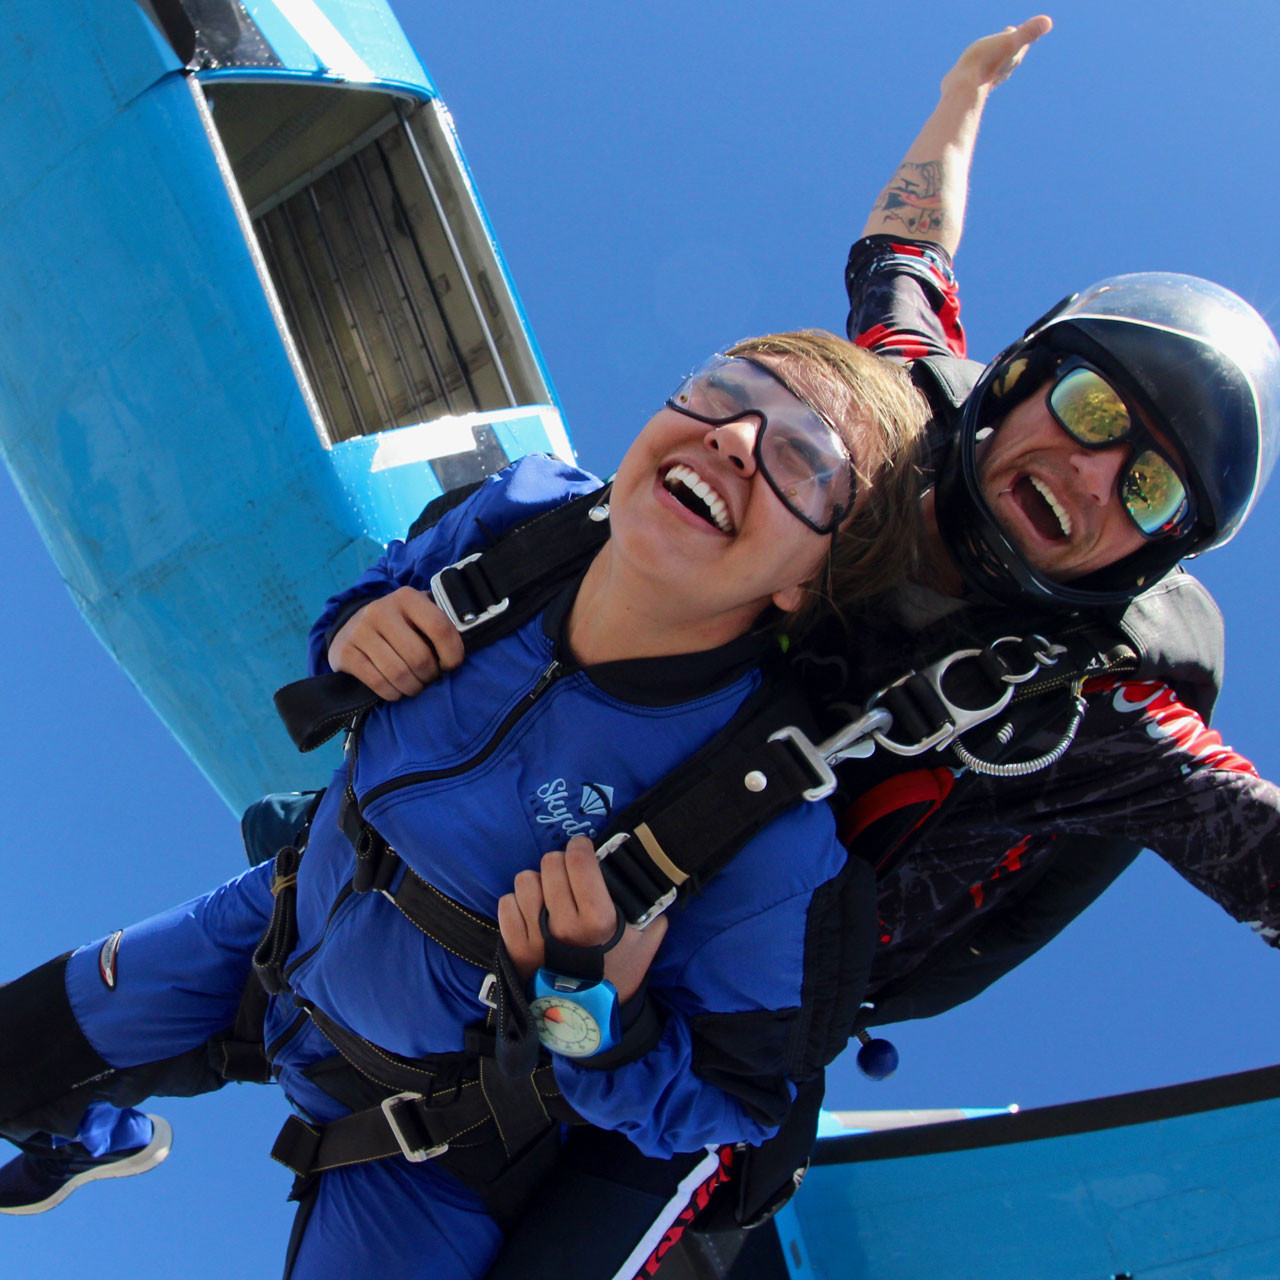 Skydiving Anxiety and How You Can Prepare | Skydive Calfornia